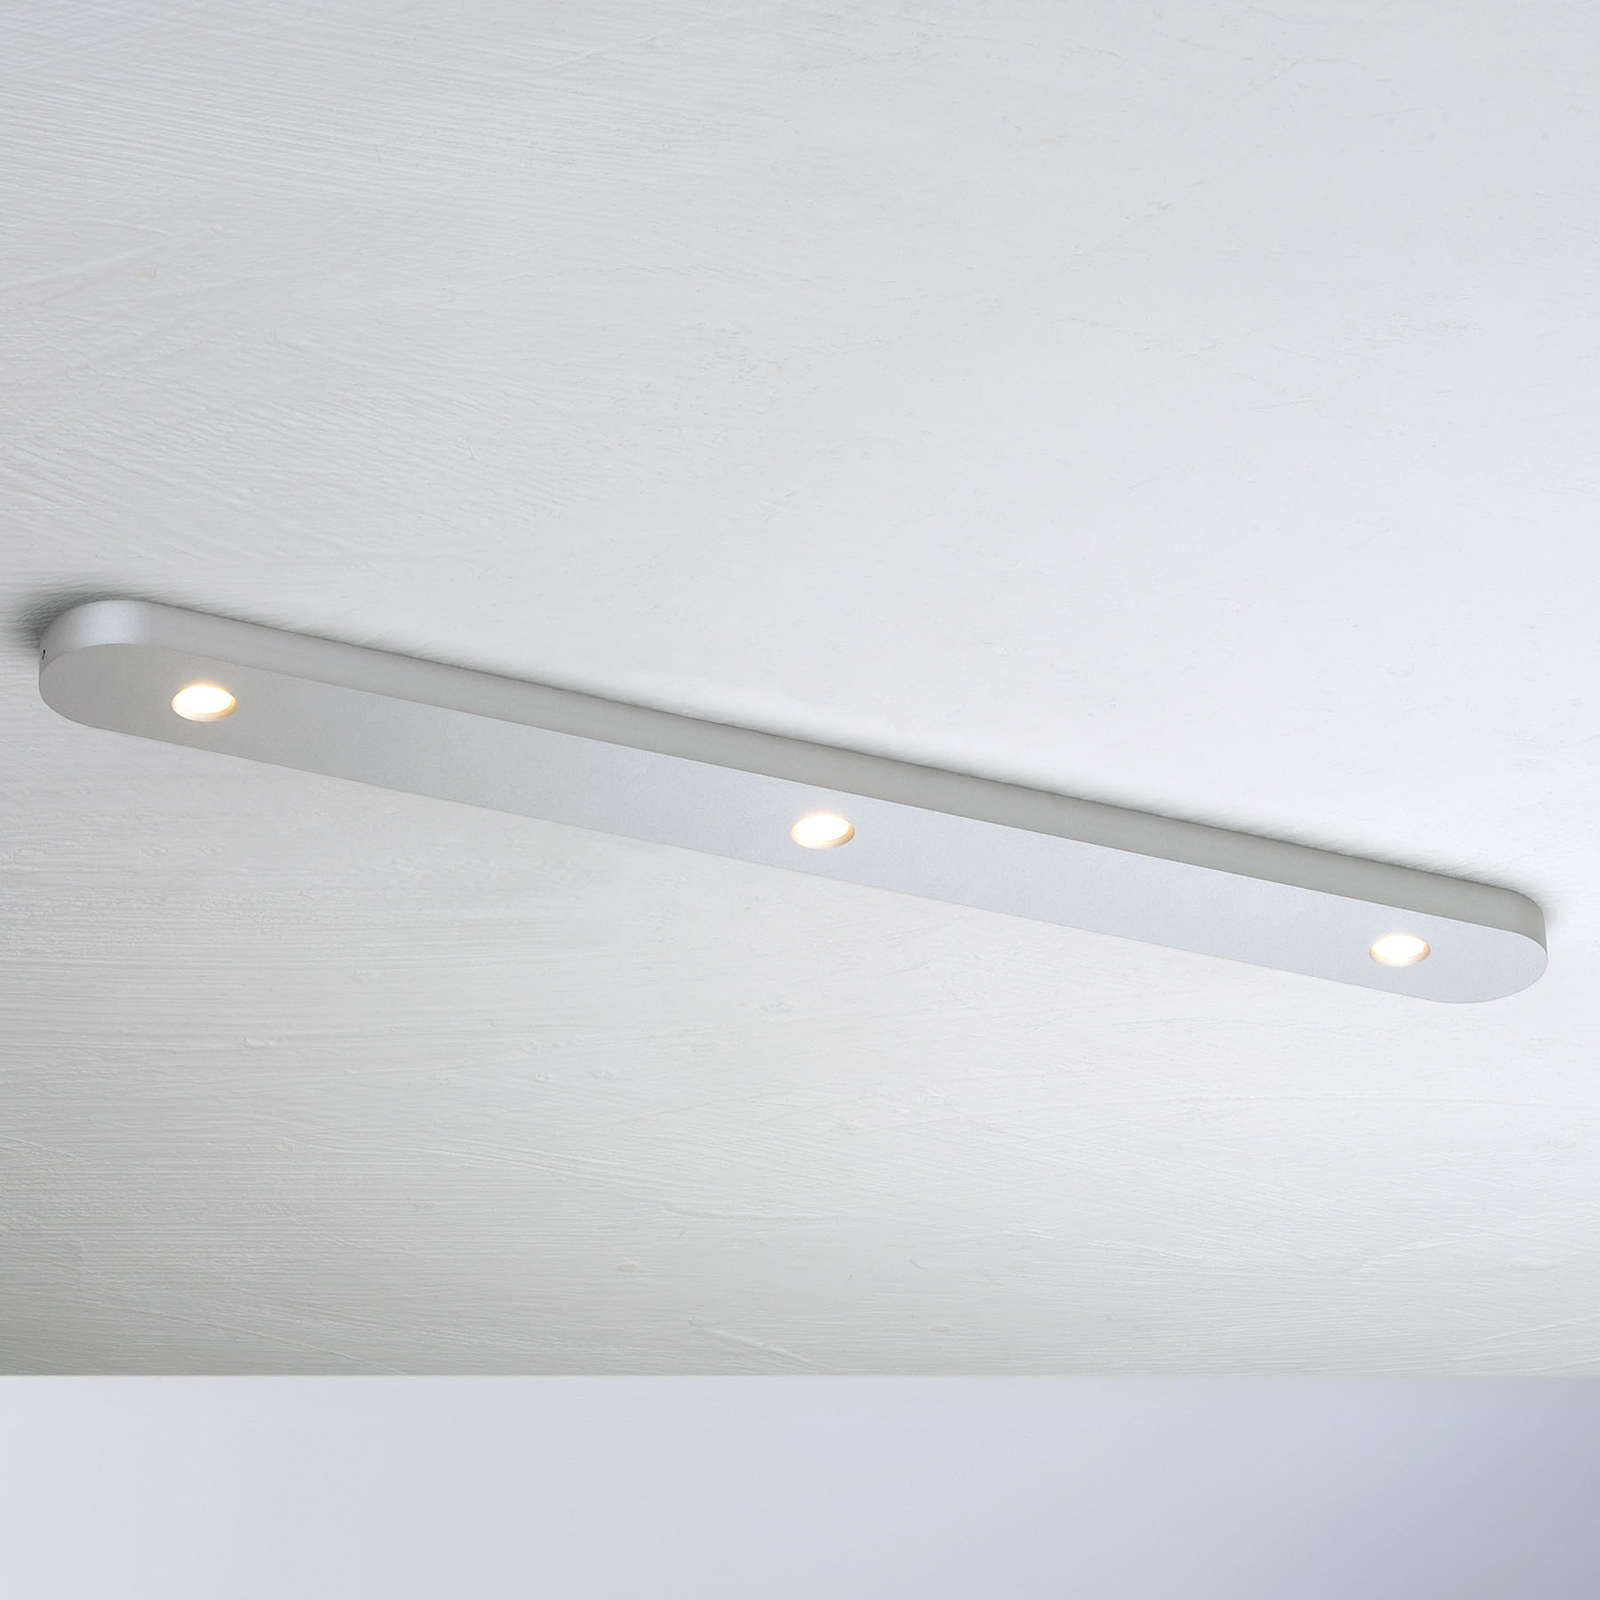 Bopp Close lampa sufitowa LED 3-pkt. aluminium